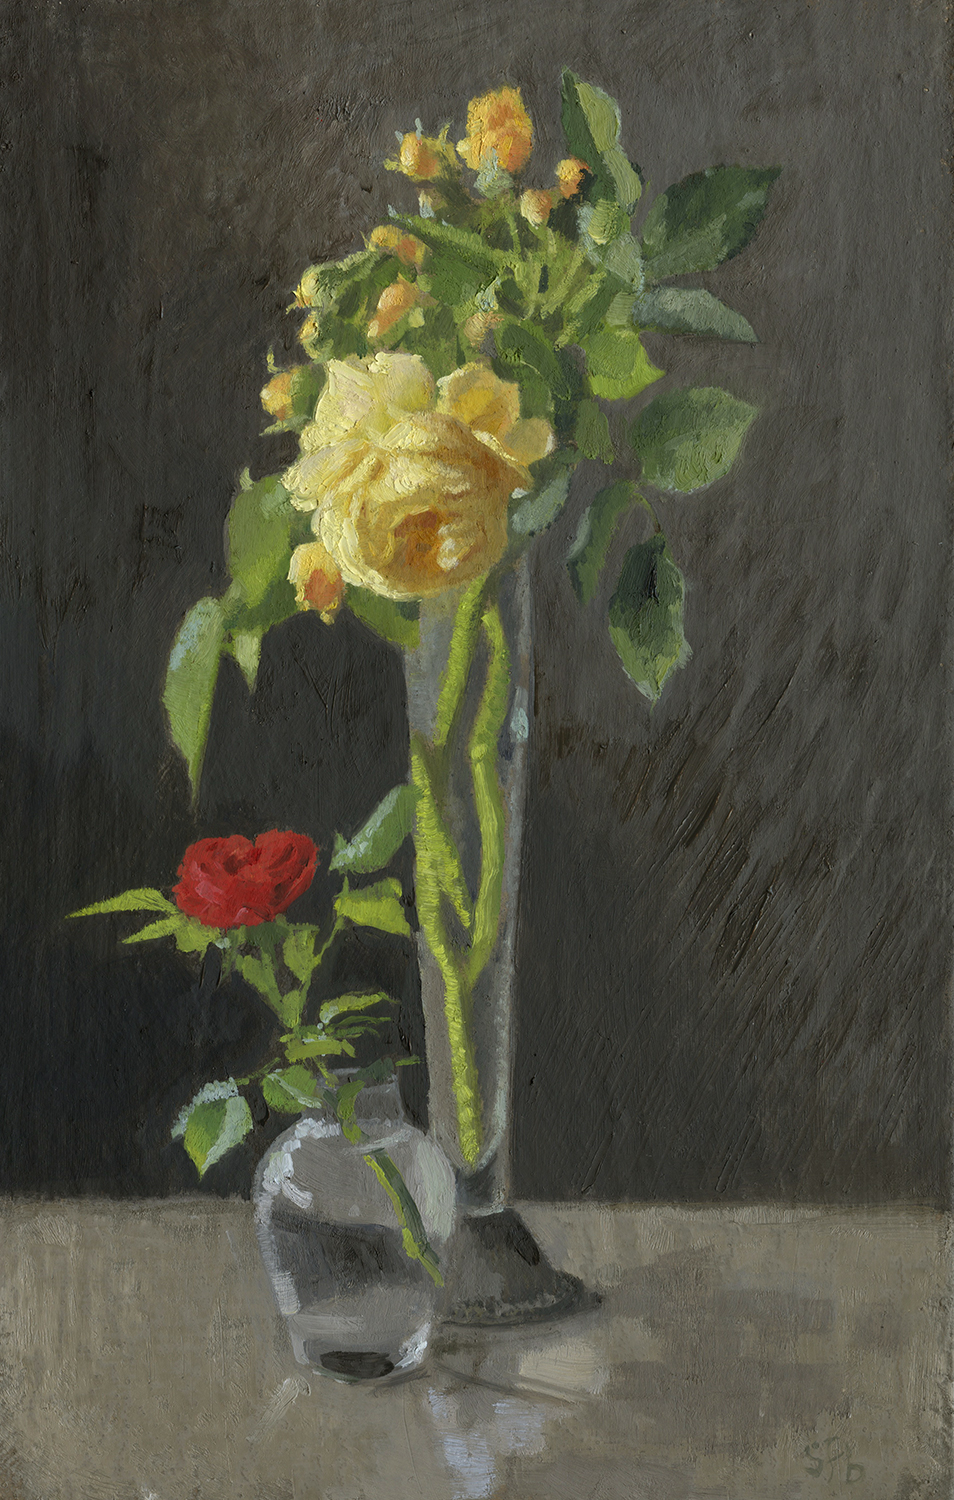 Cheerful Unconditional Love Painting Sarah F Burns Rogue Valley Roses Reviews Scoop On Rogue Valley Roses Jeri Jennings houzz-02 Rogue Valley Roses